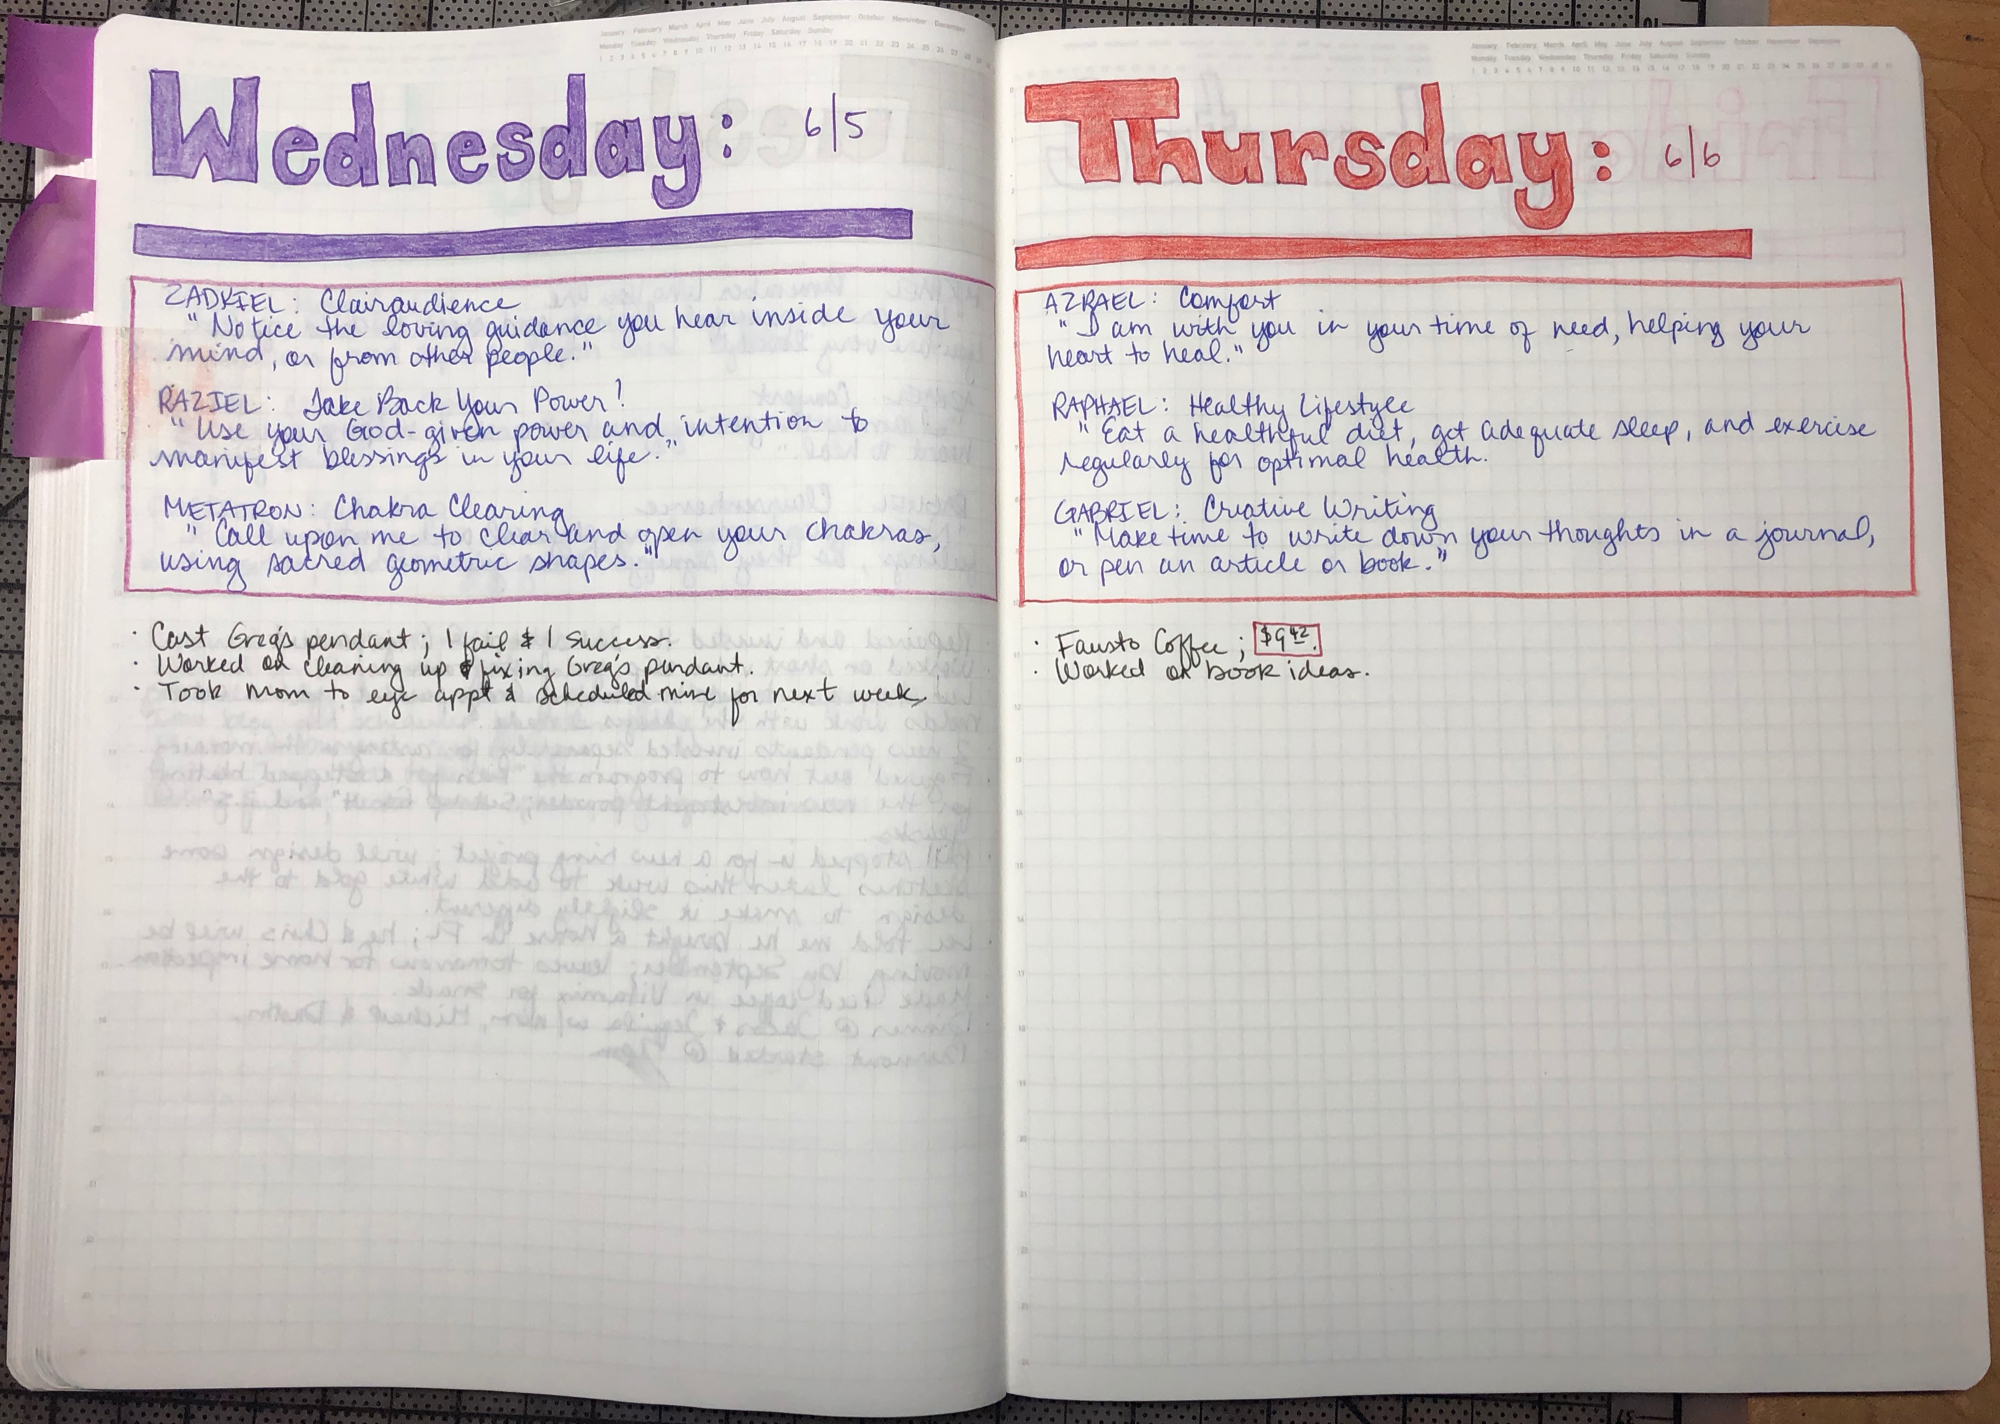 My daily page layout with my card pulls and bullets of the tasks I have worked on for the day.